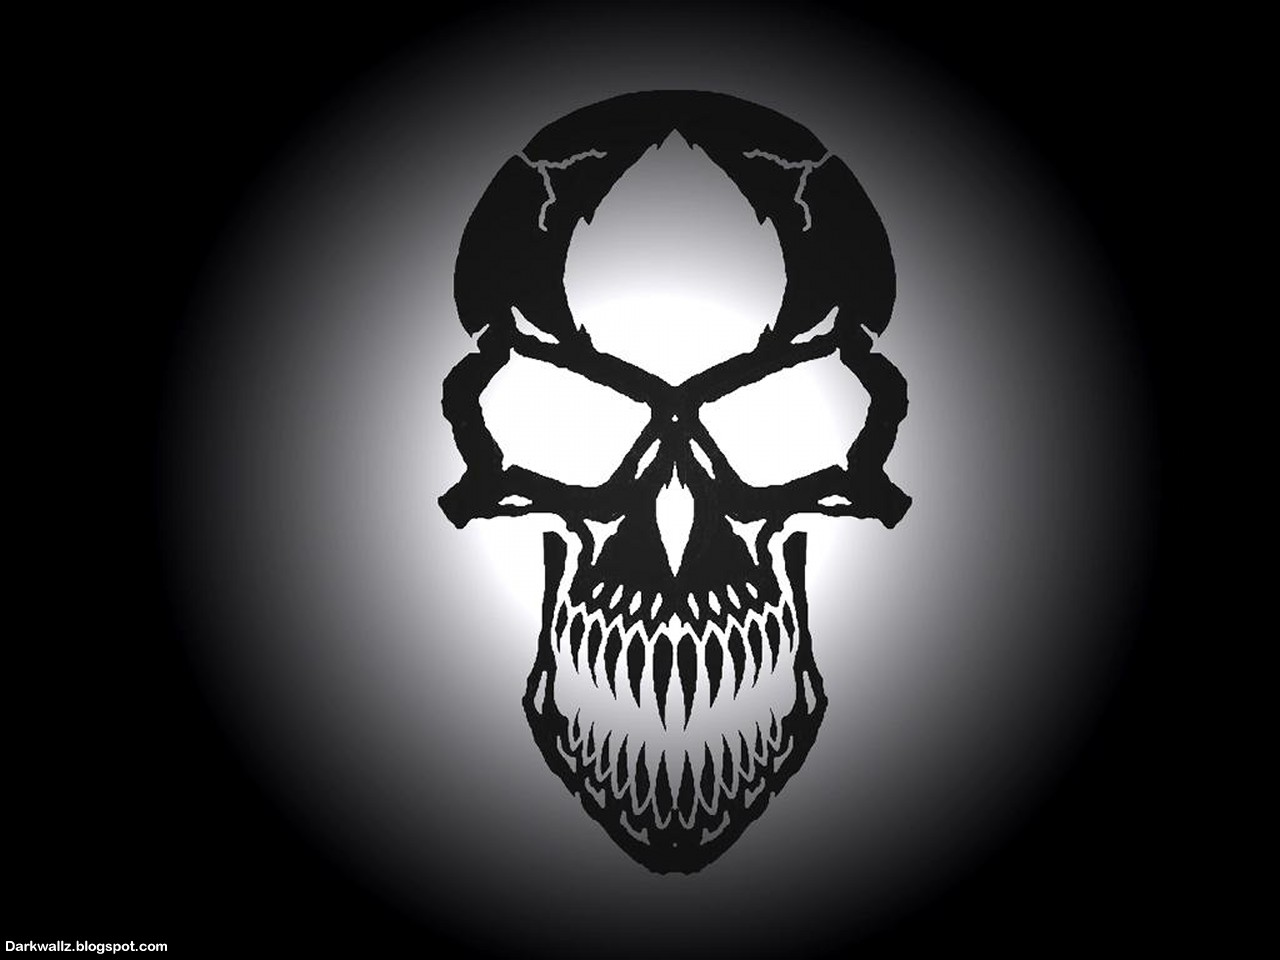 Skulls Wallpapers 09 Dark Skull Wallpaper